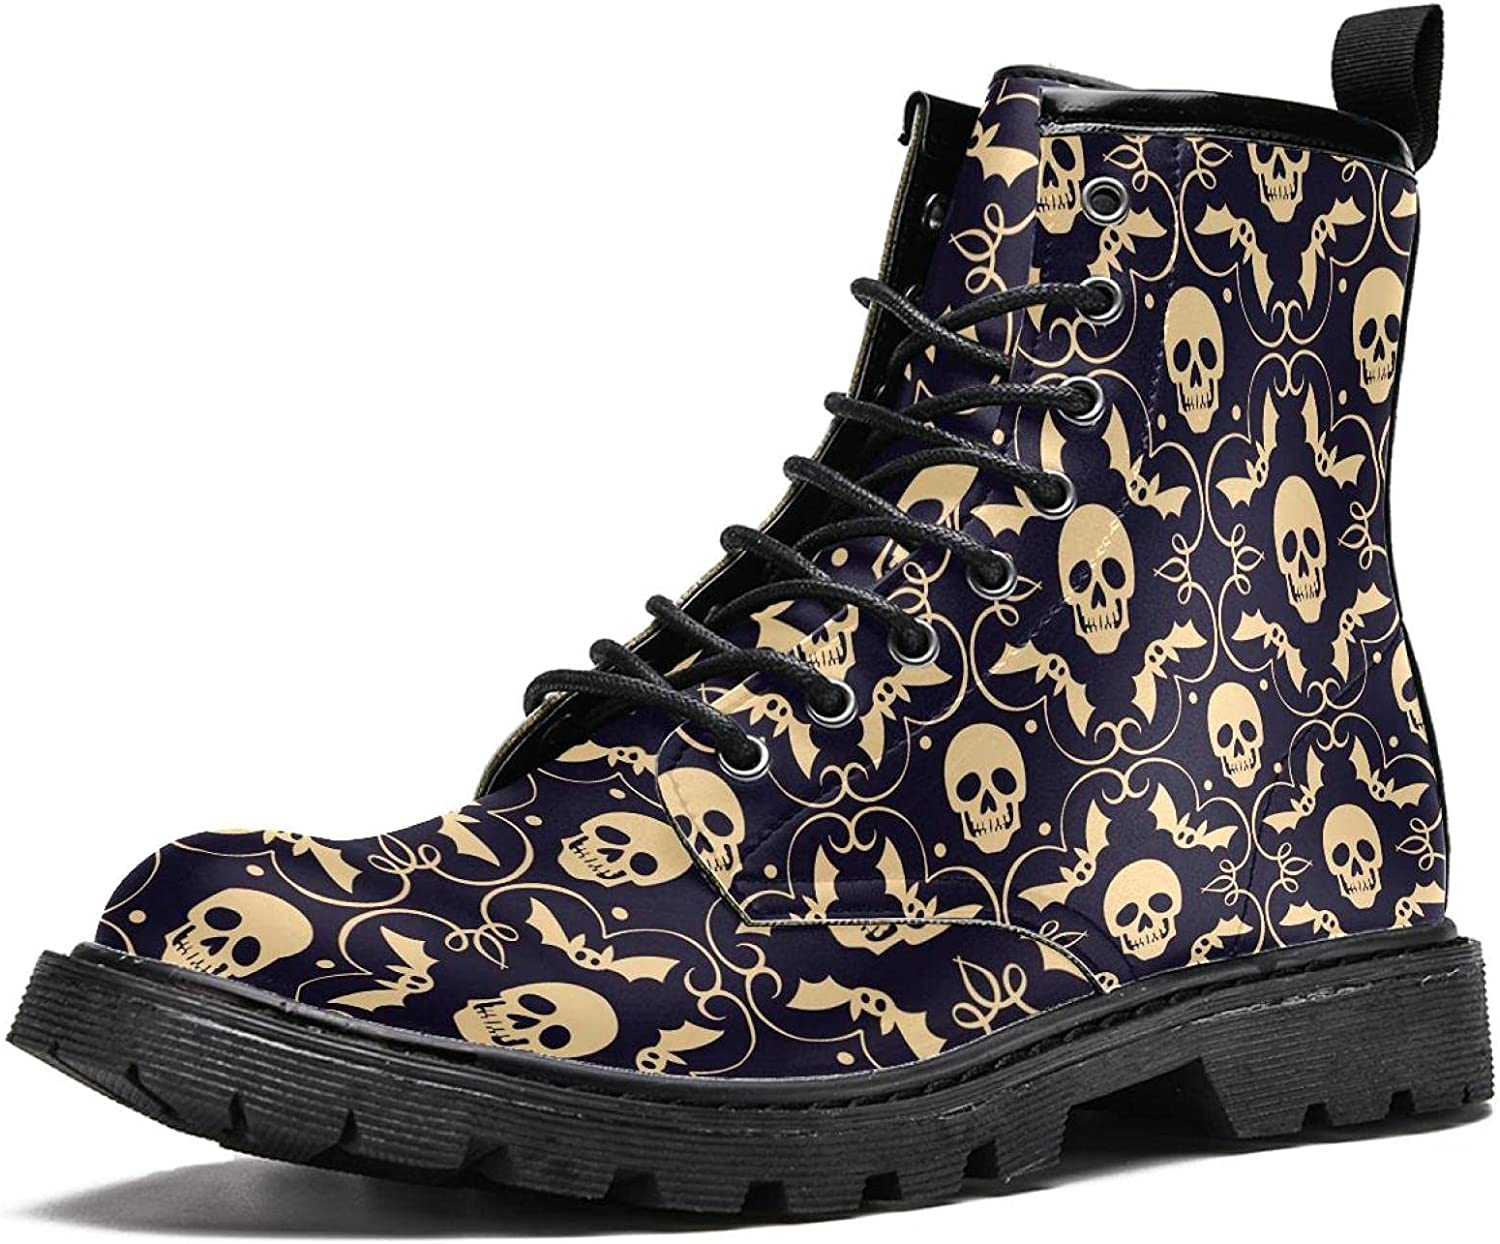 Men's Lace Fashion Boot Skull Halloween Vintage Ranking TOP2 Purchase